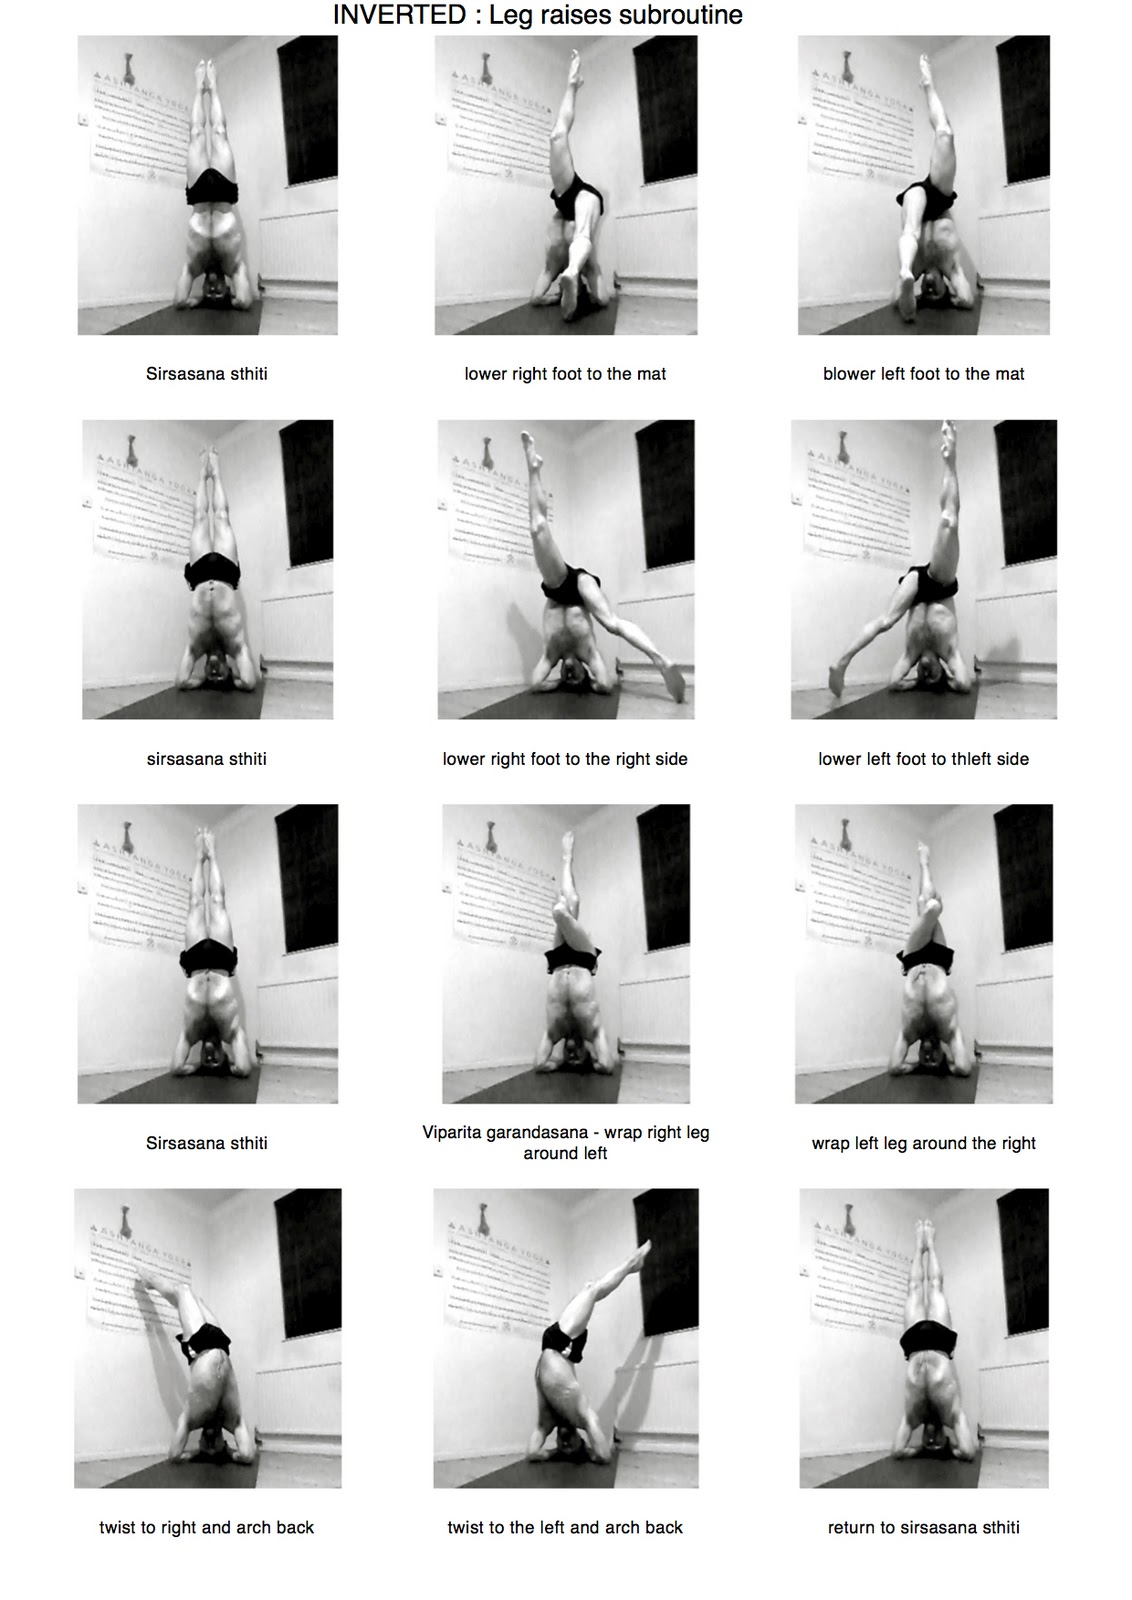 Day 78 INVERTED Leg Raises Subroutine From Vinyasa Krama Inverted Sequence